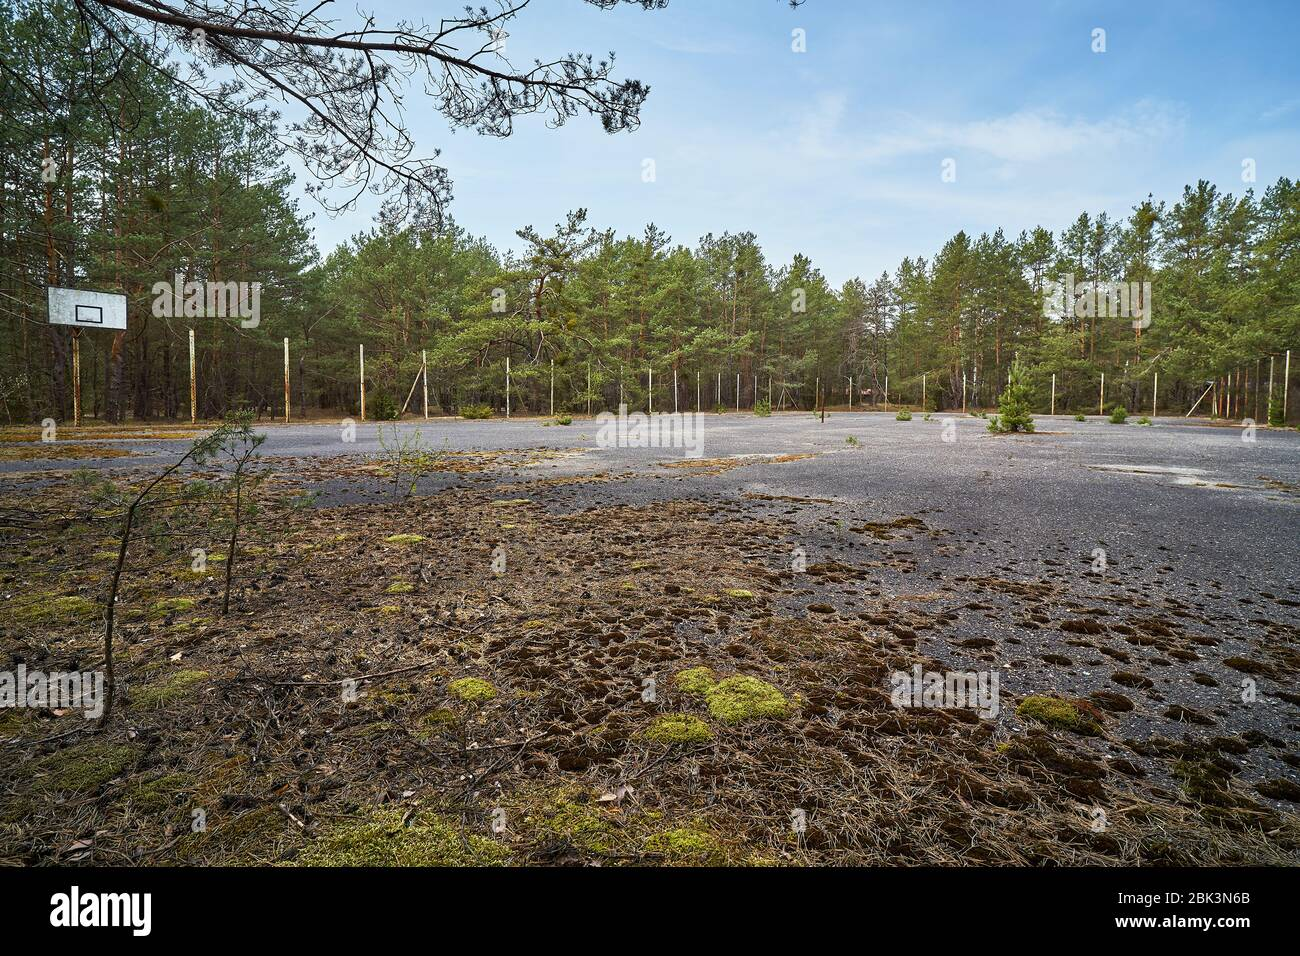 Old Abandoned Asphalt Playground In The Spring Forest Stock Photo Alamy